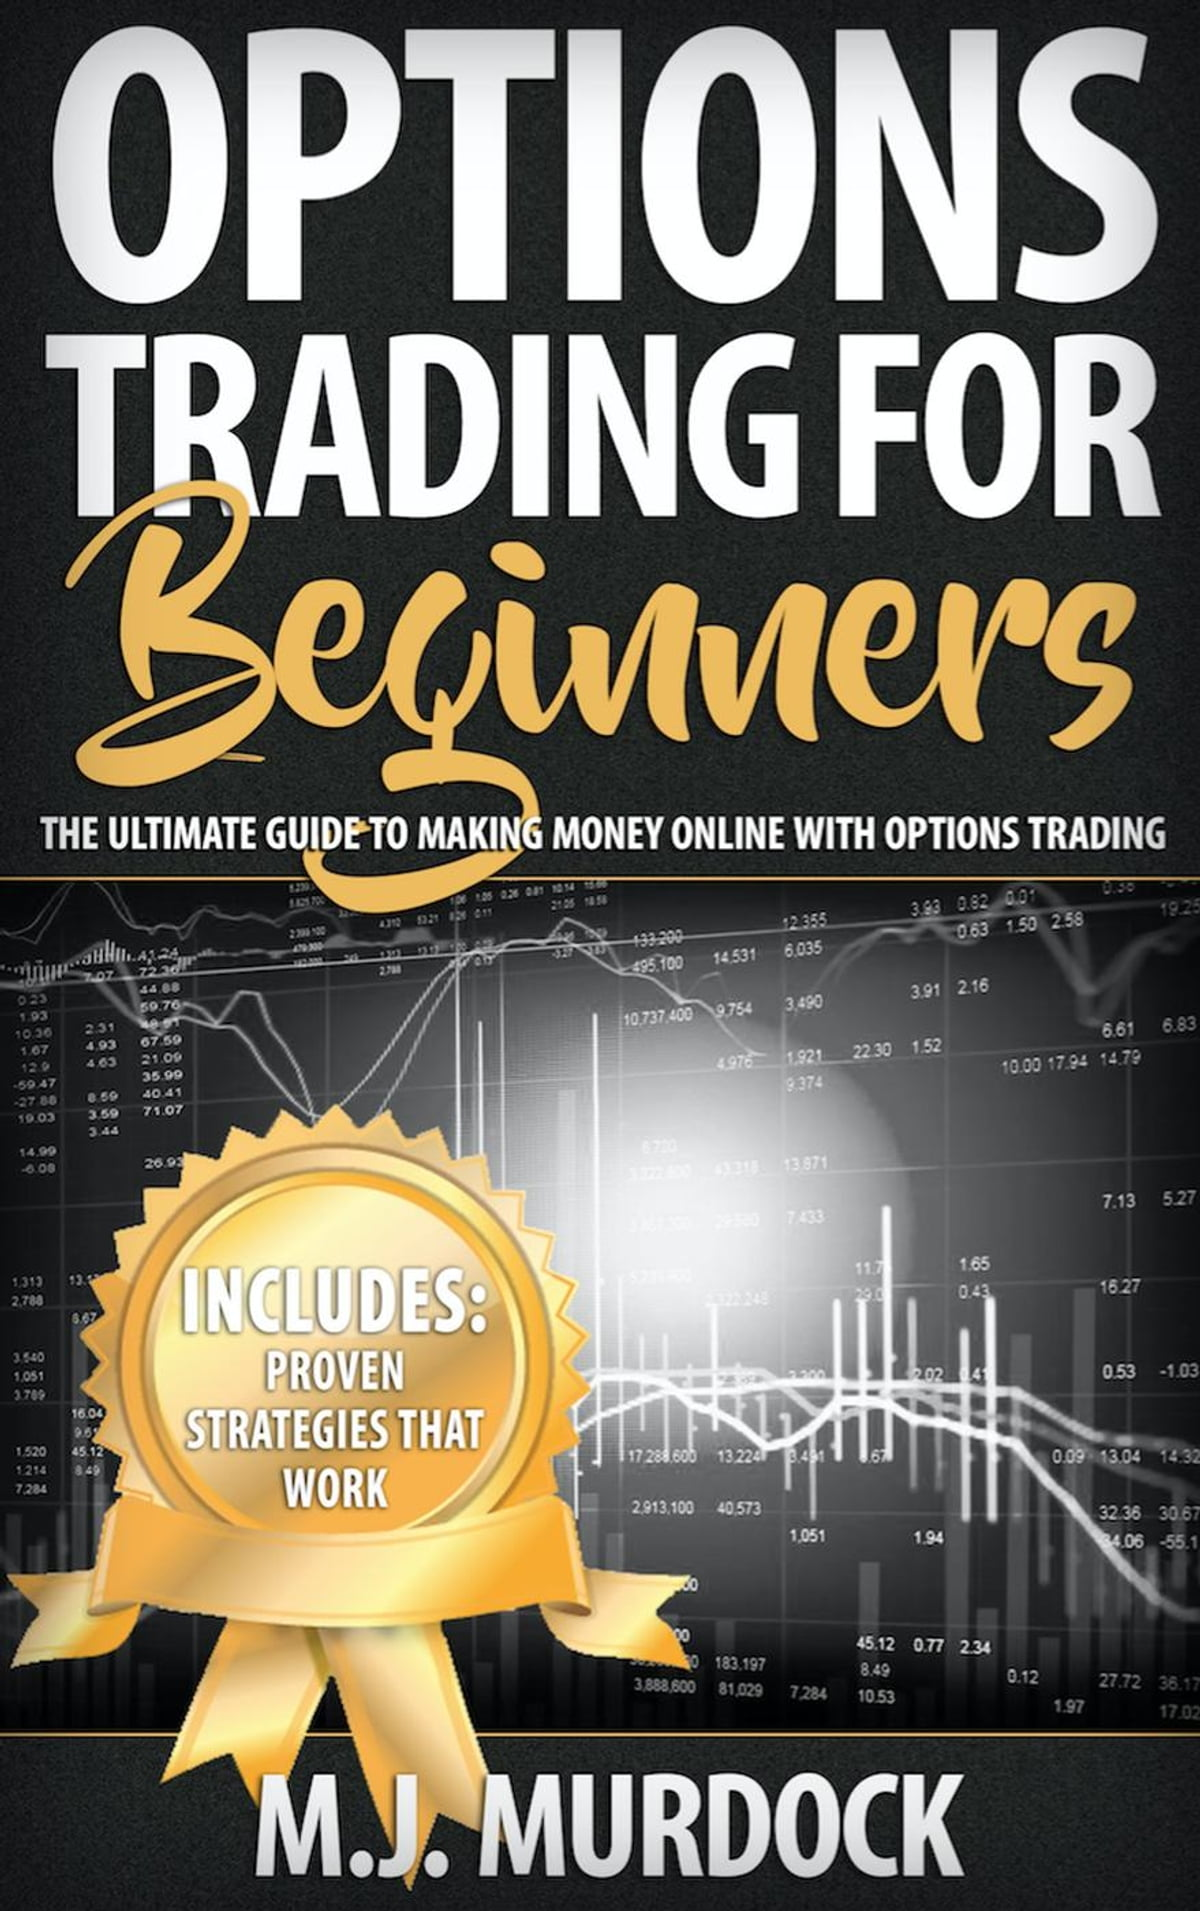 Best online stock brokers for options trading 2018